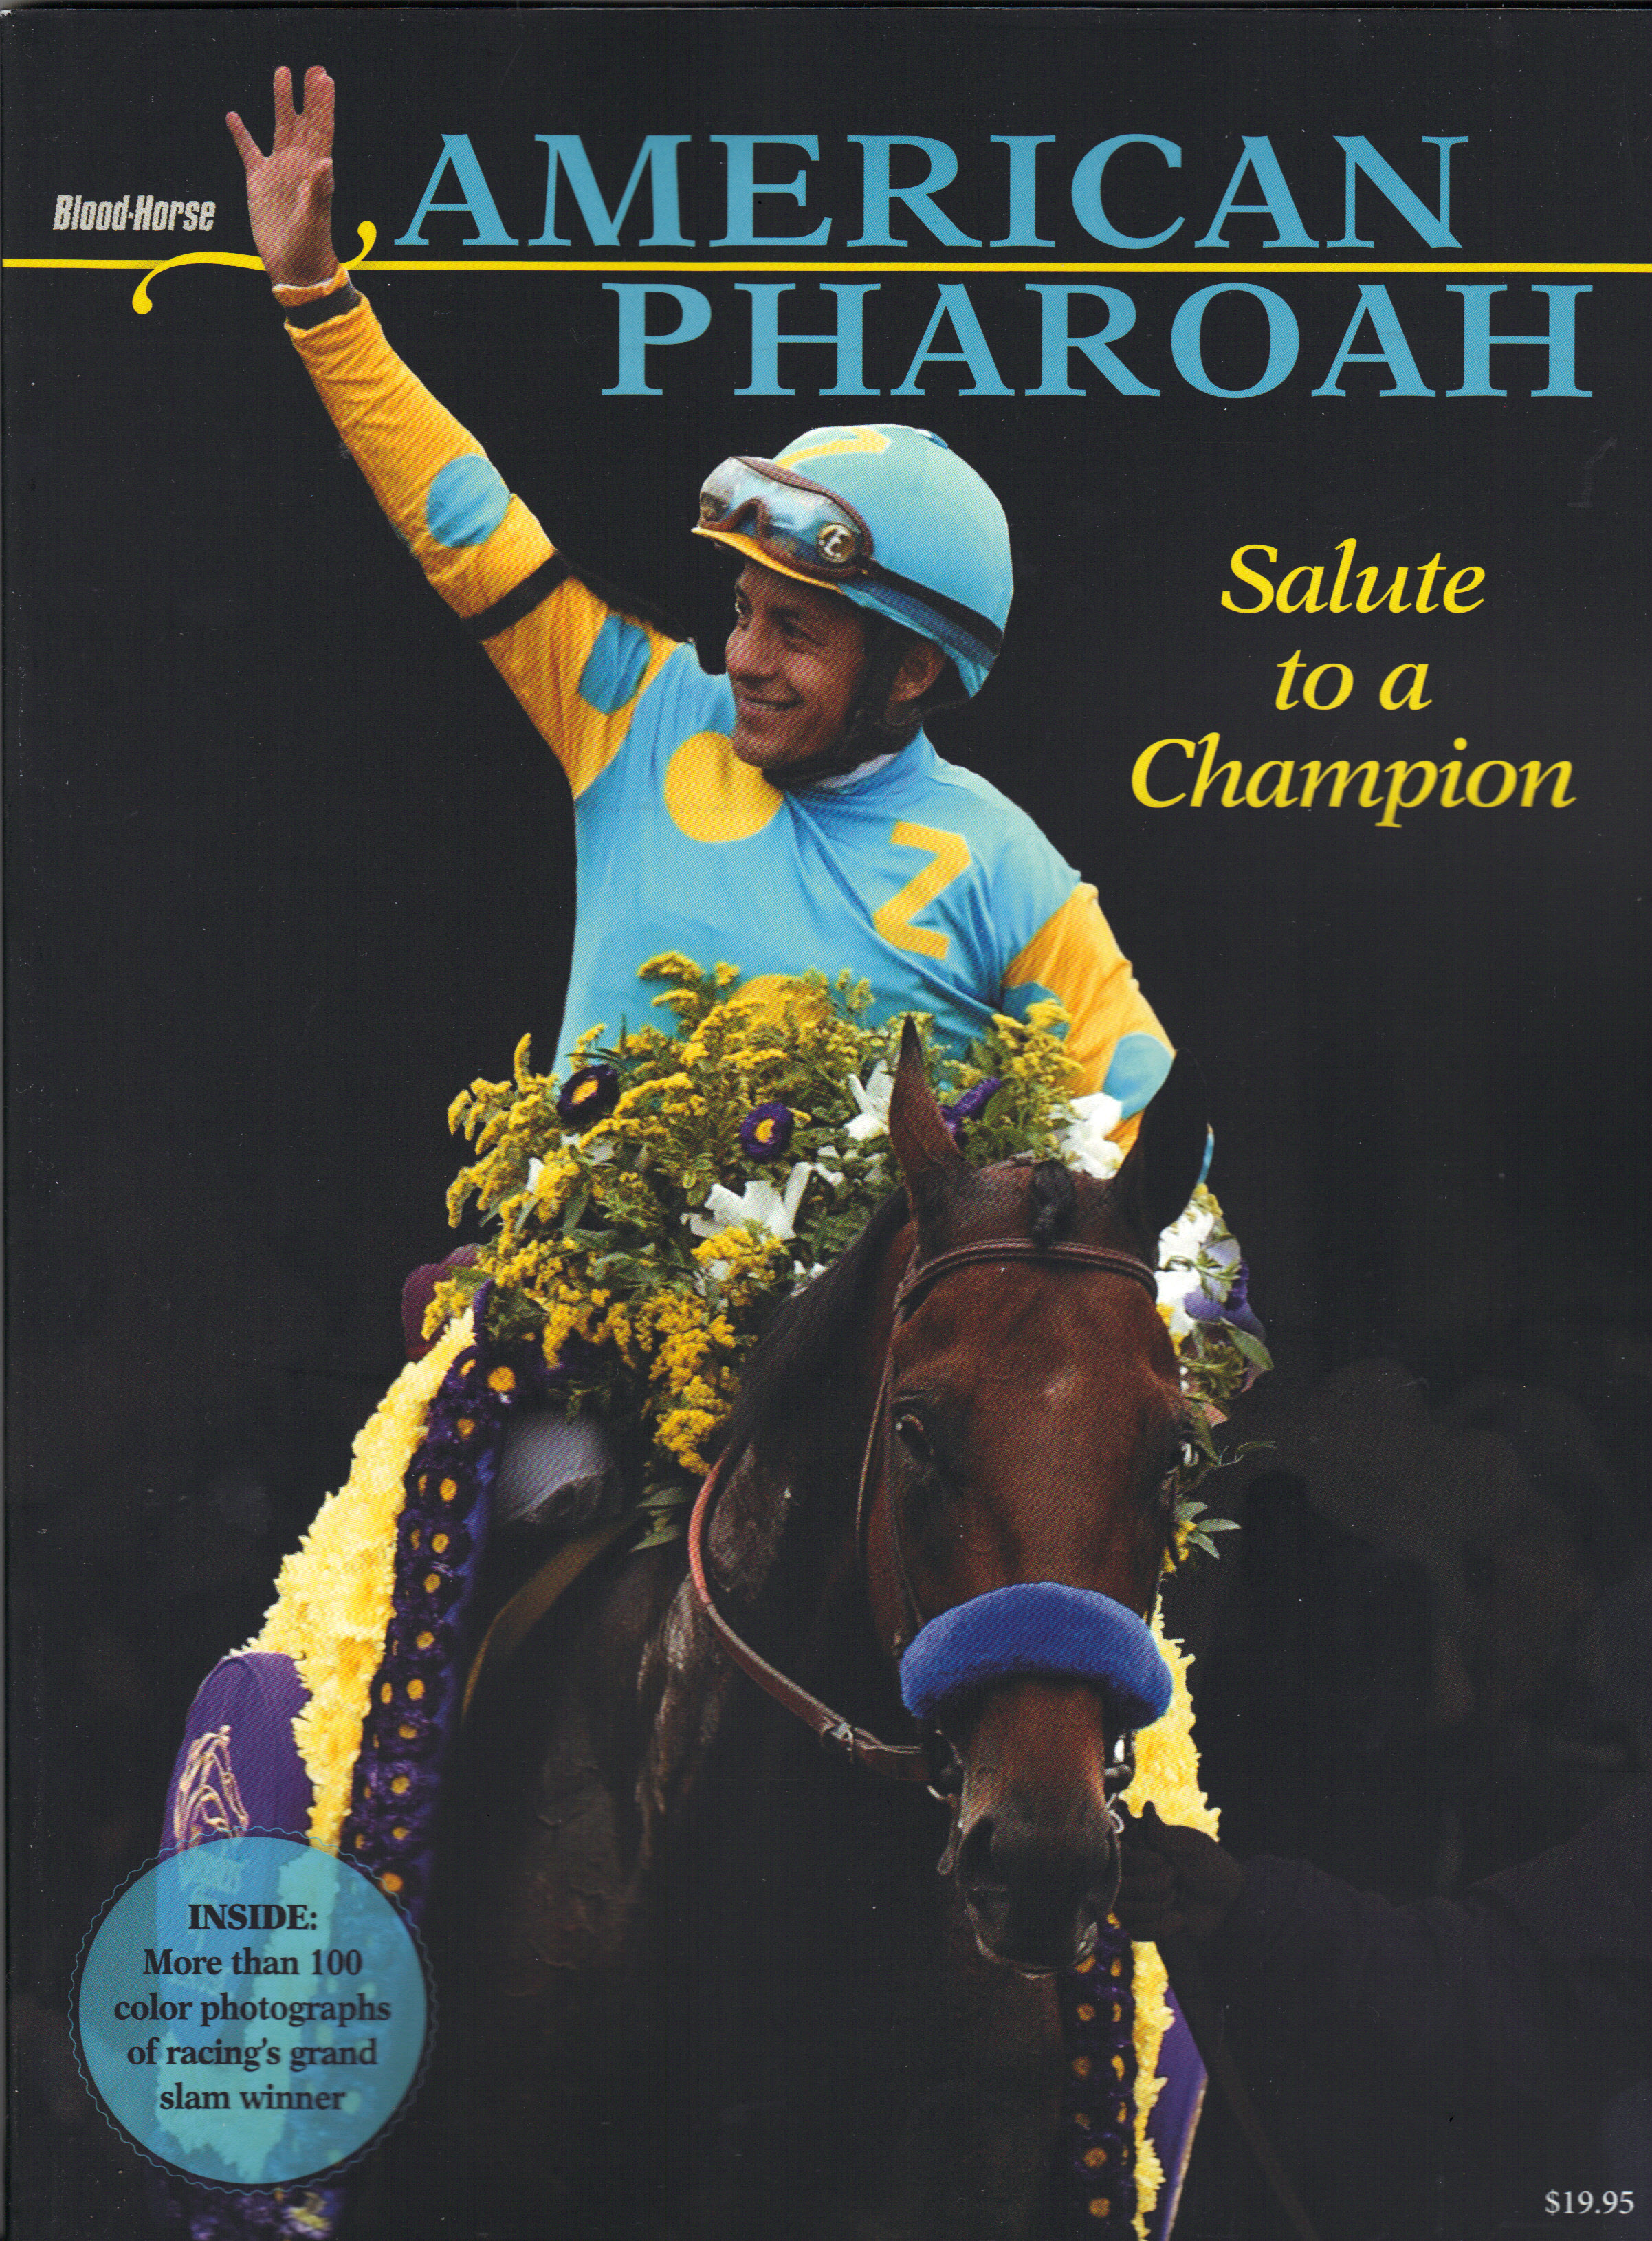 Image for AMERICAN PHAROAH ~ SALUTE TO A CHAMPION Special Collector's Edition, December 2015